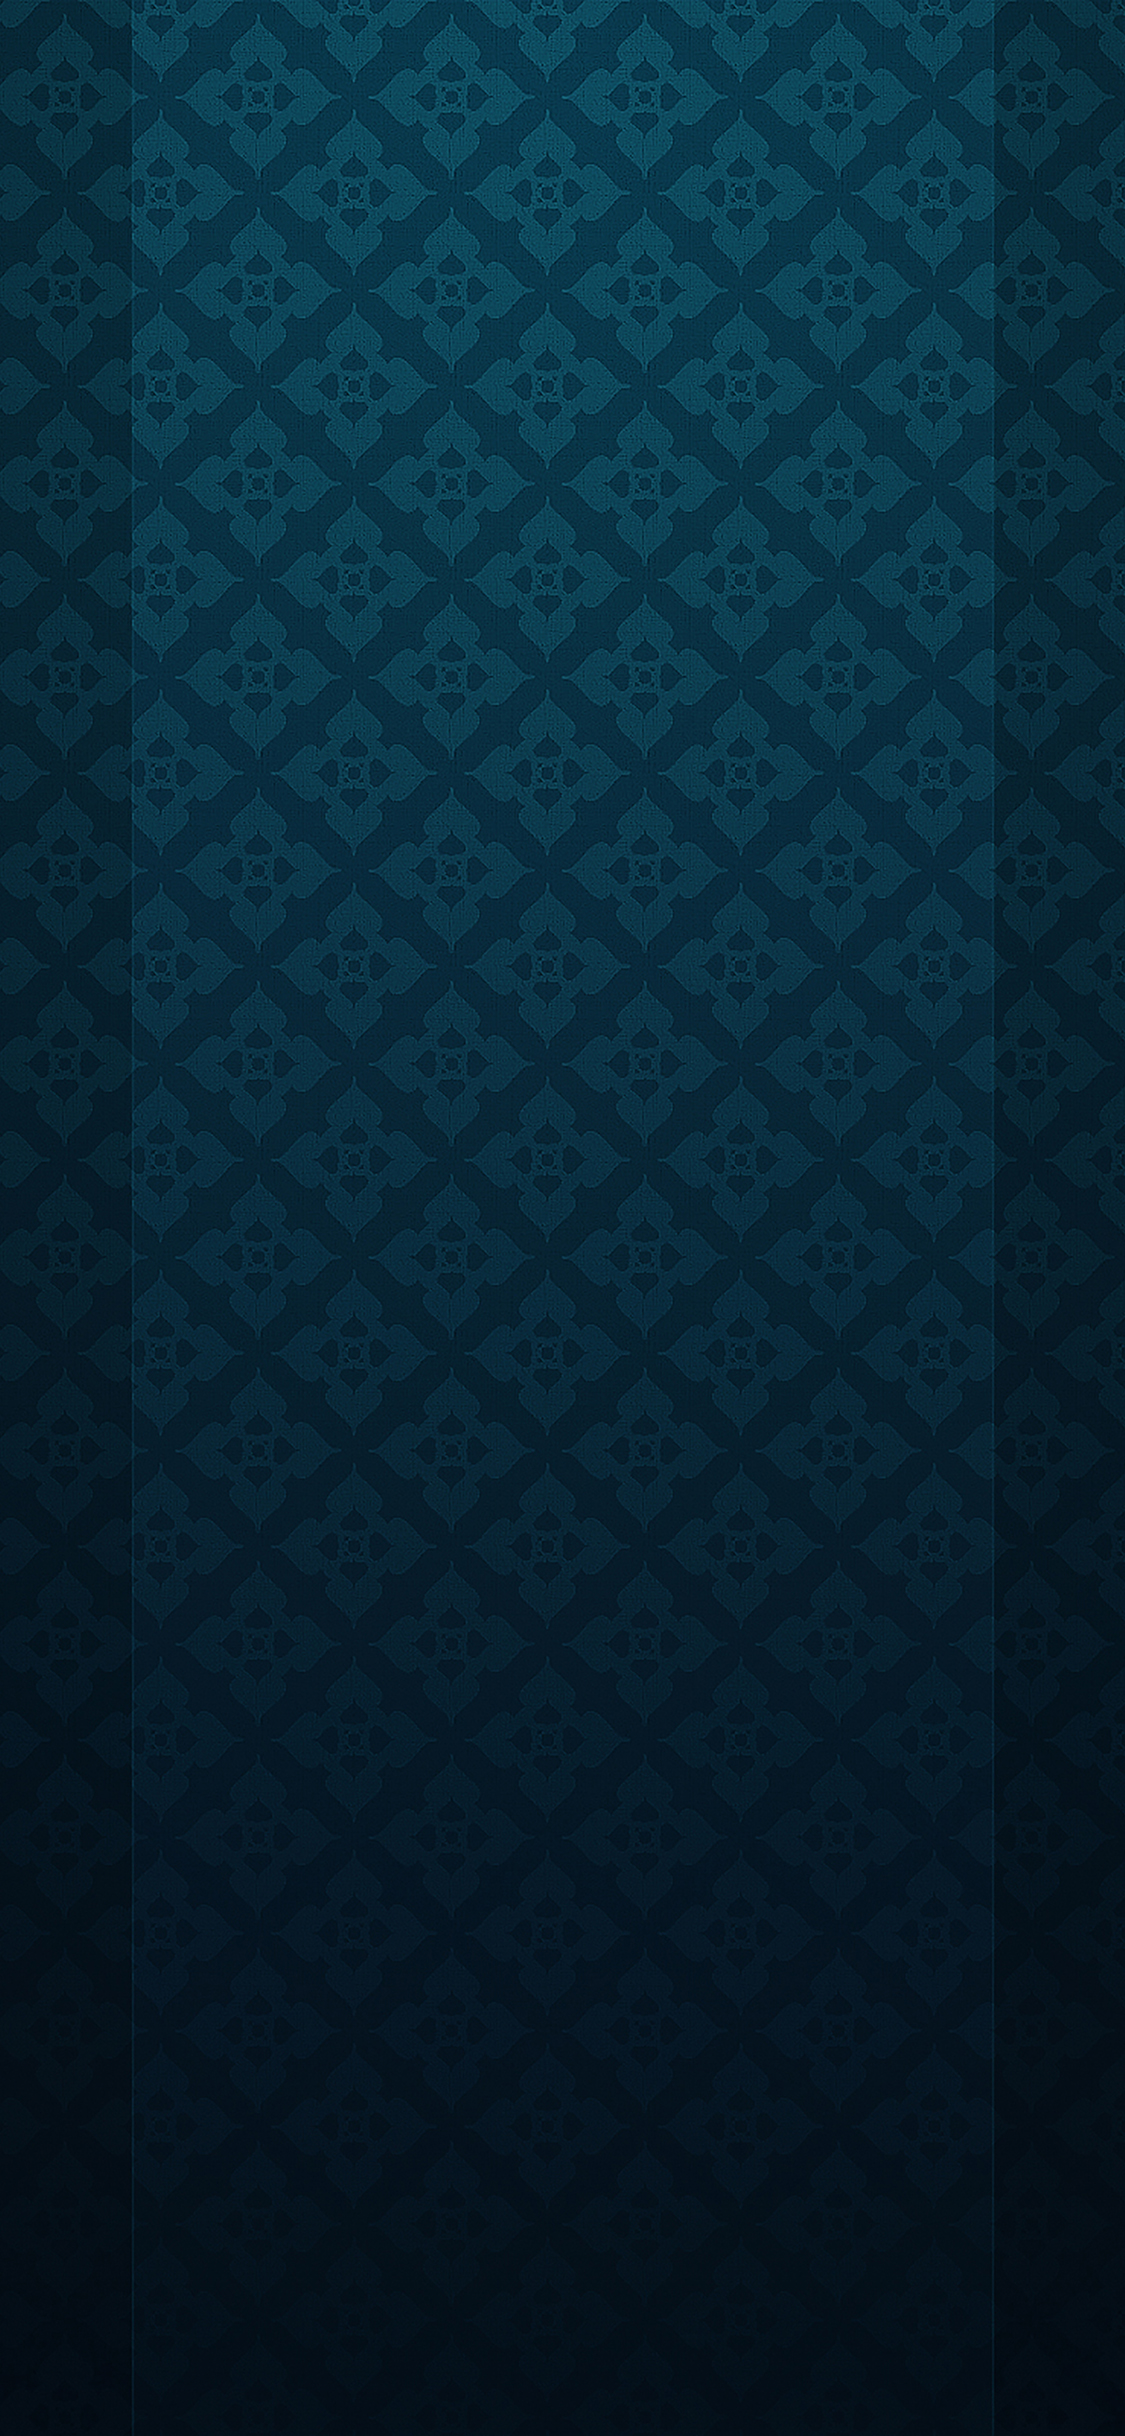 iPhoneXpapers.com-Apple-iPhone-wallpaper-vc59-texture-pattern-dark-blue